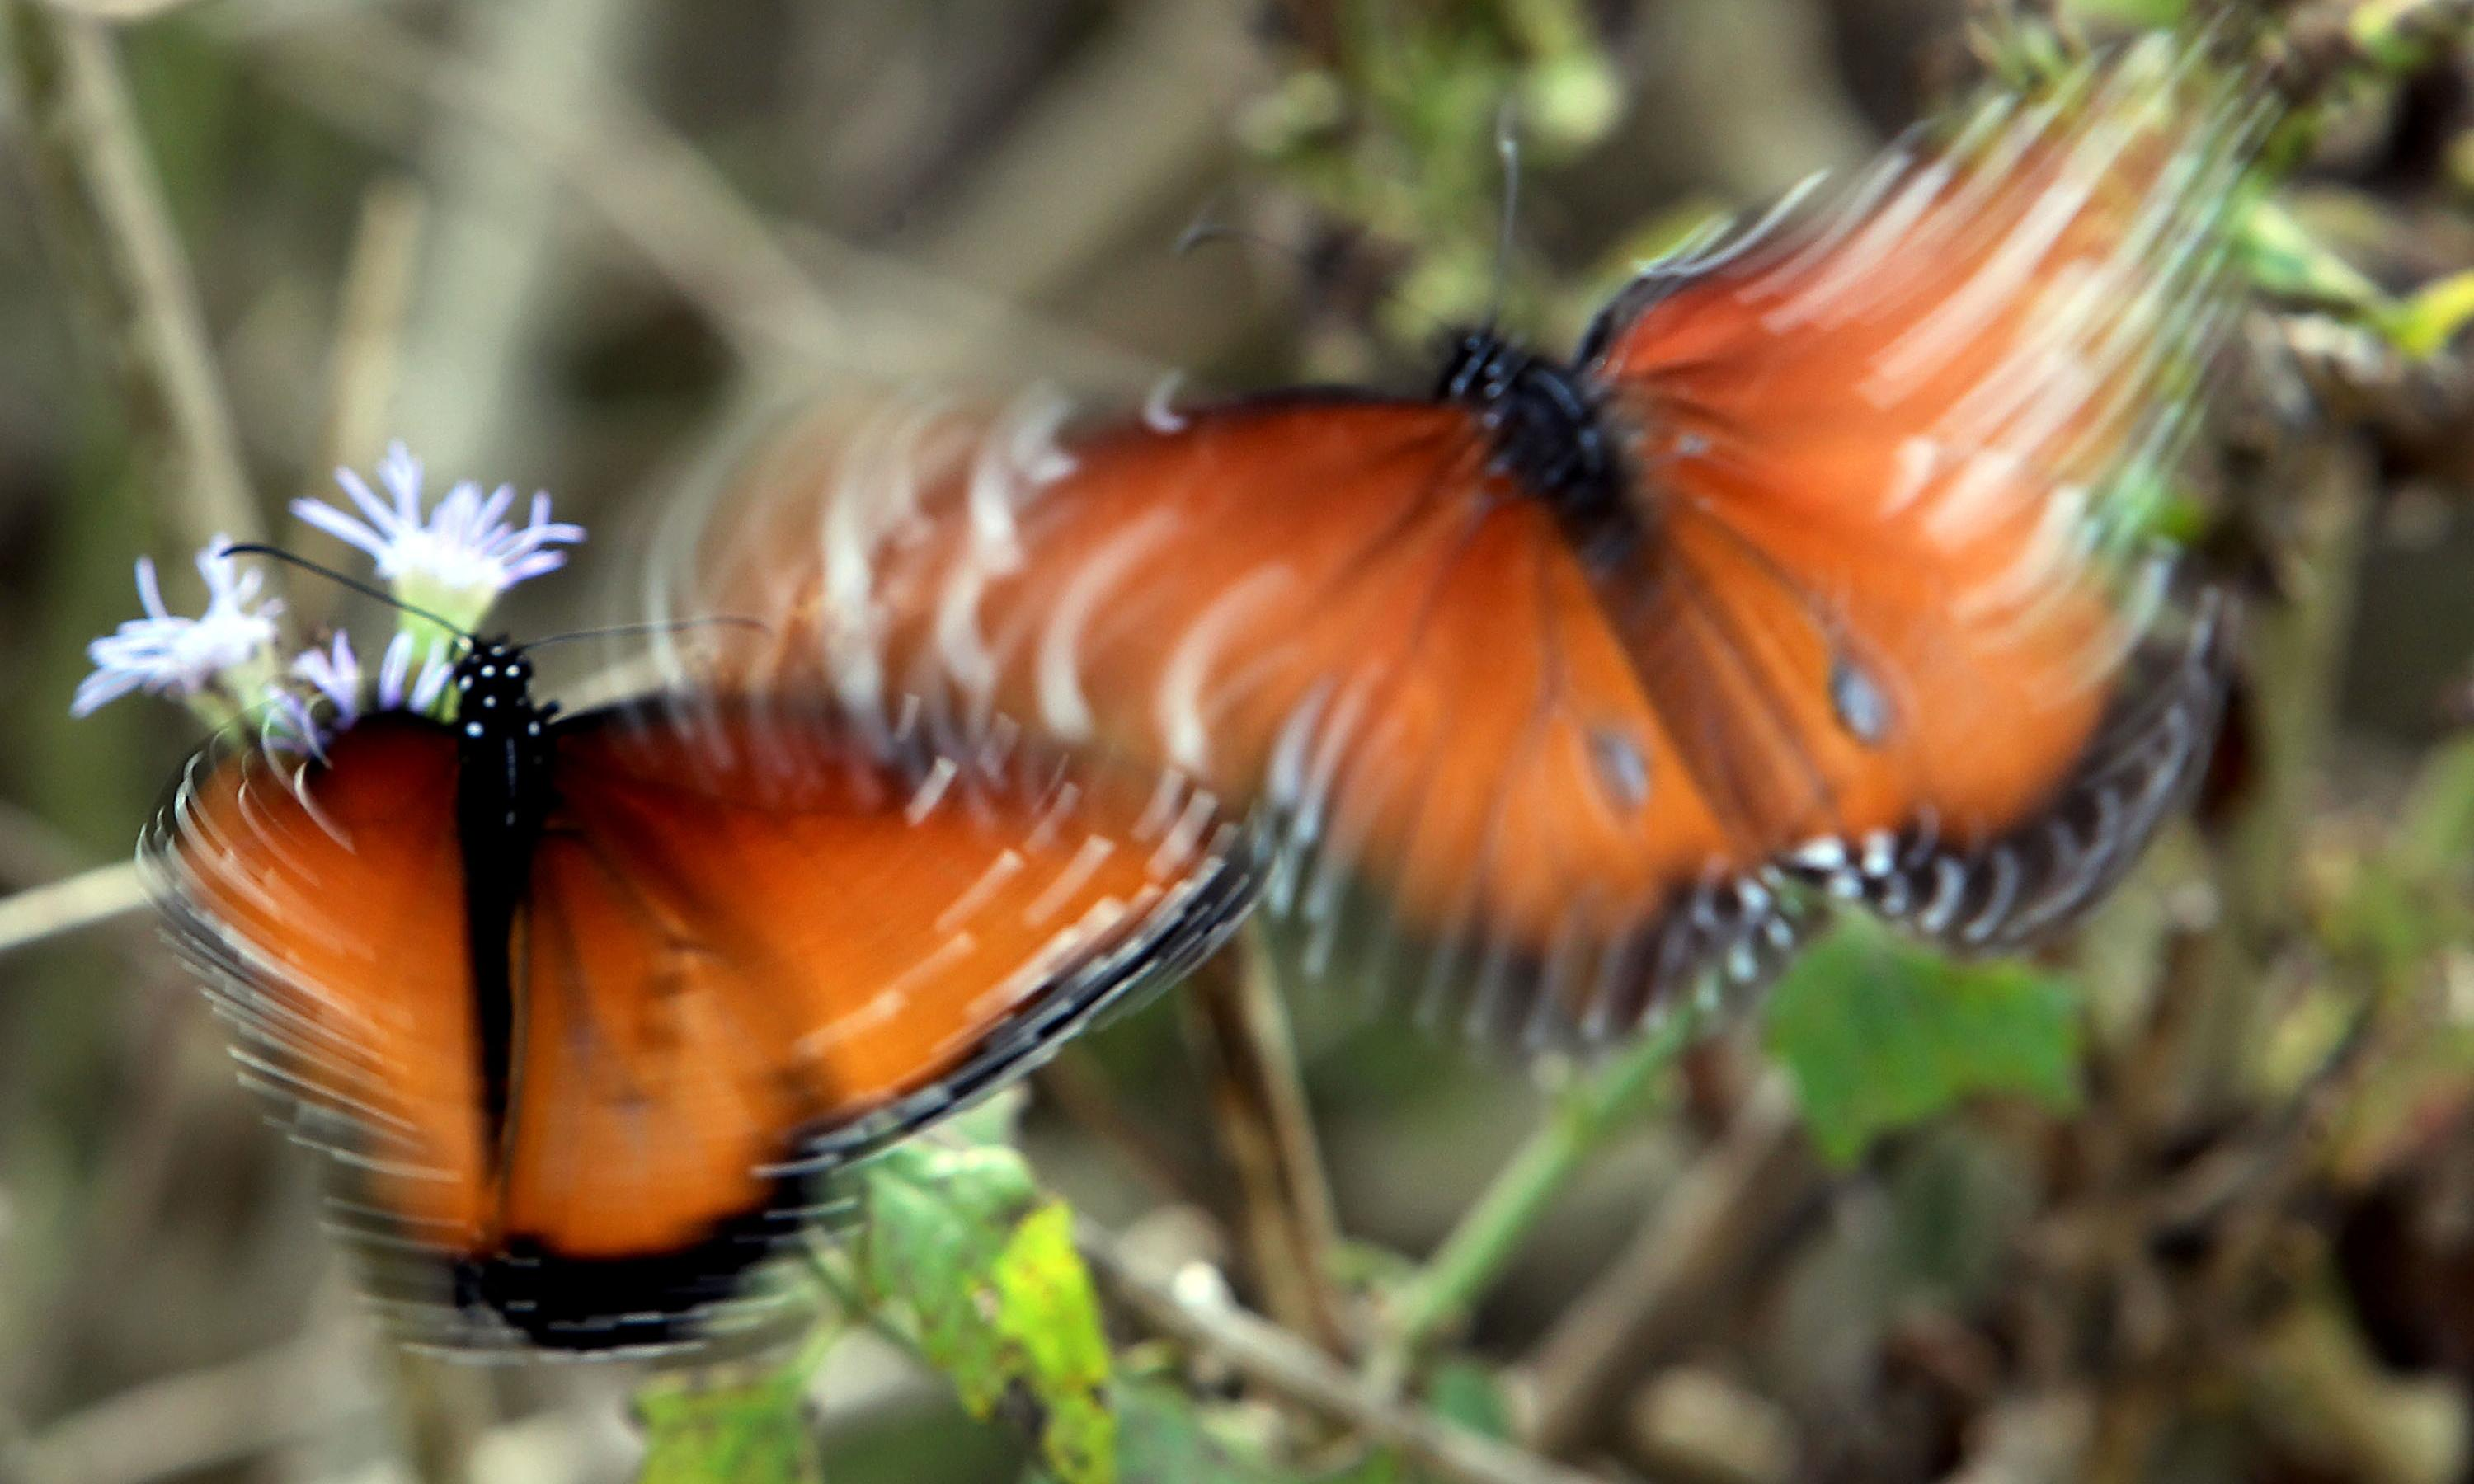 Trump supporters' private border wall blocked due to concern for butterflies